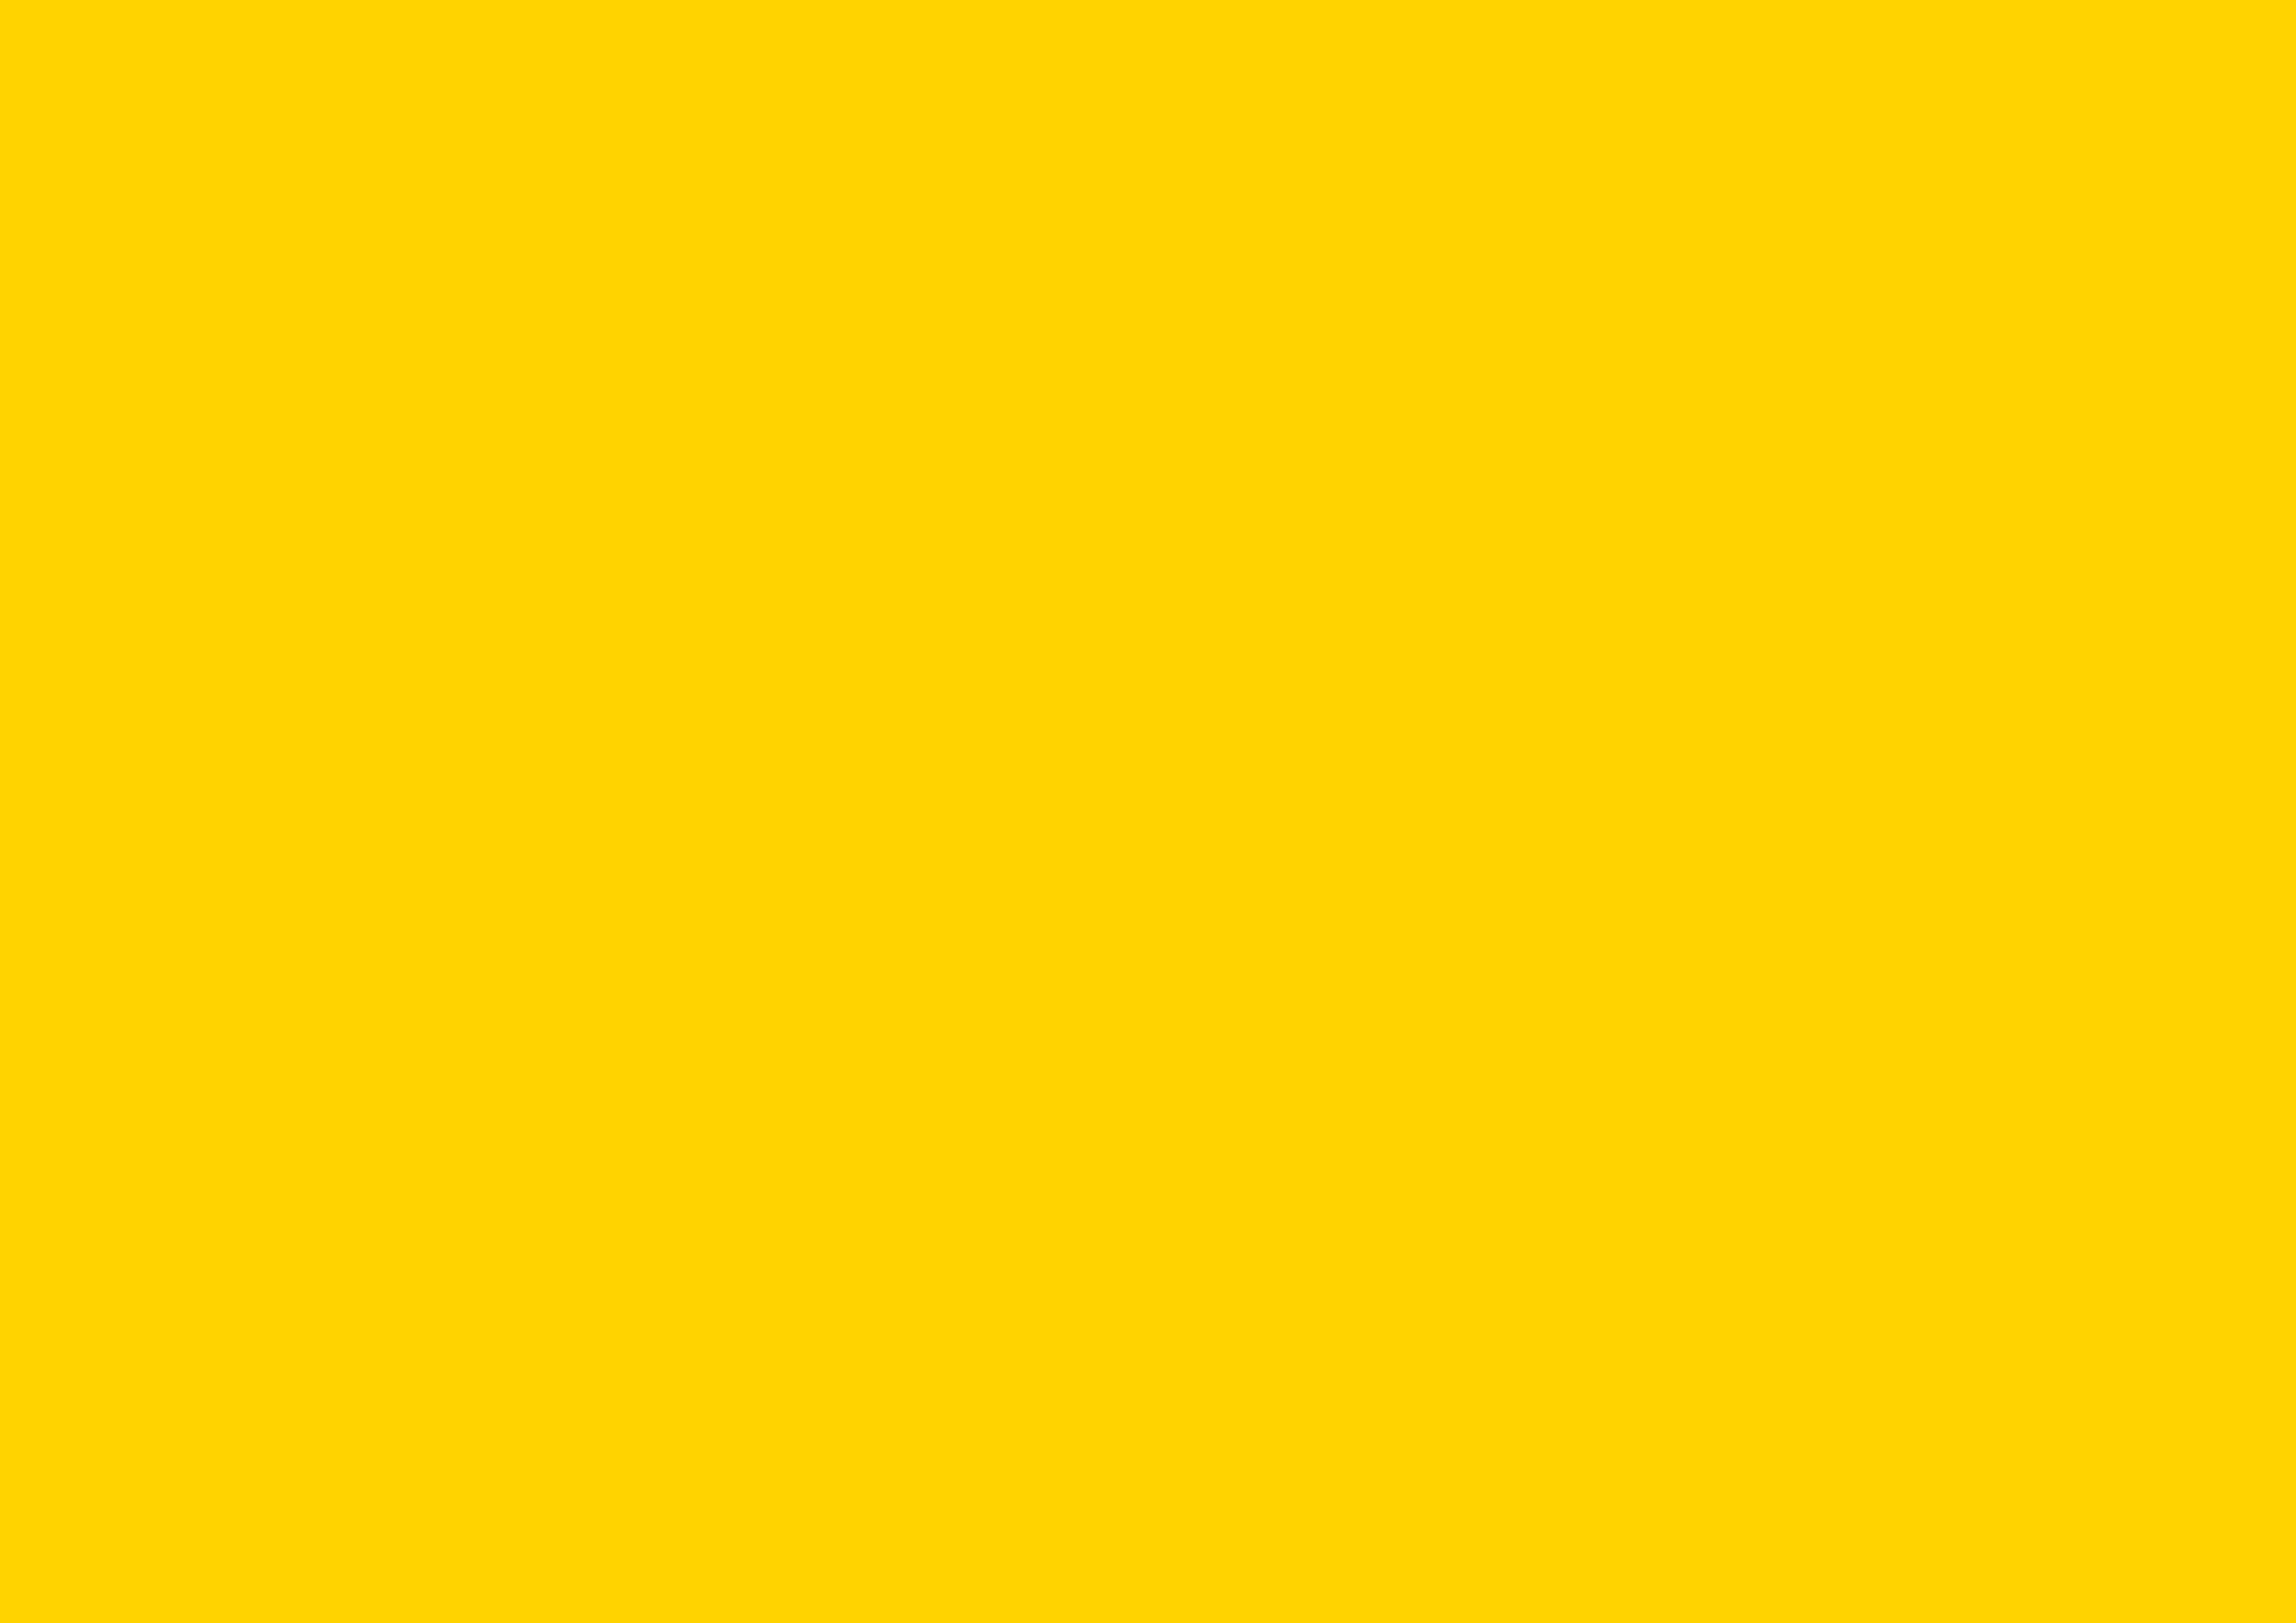 3508x2480 Cyber Yellow Solid Color Background